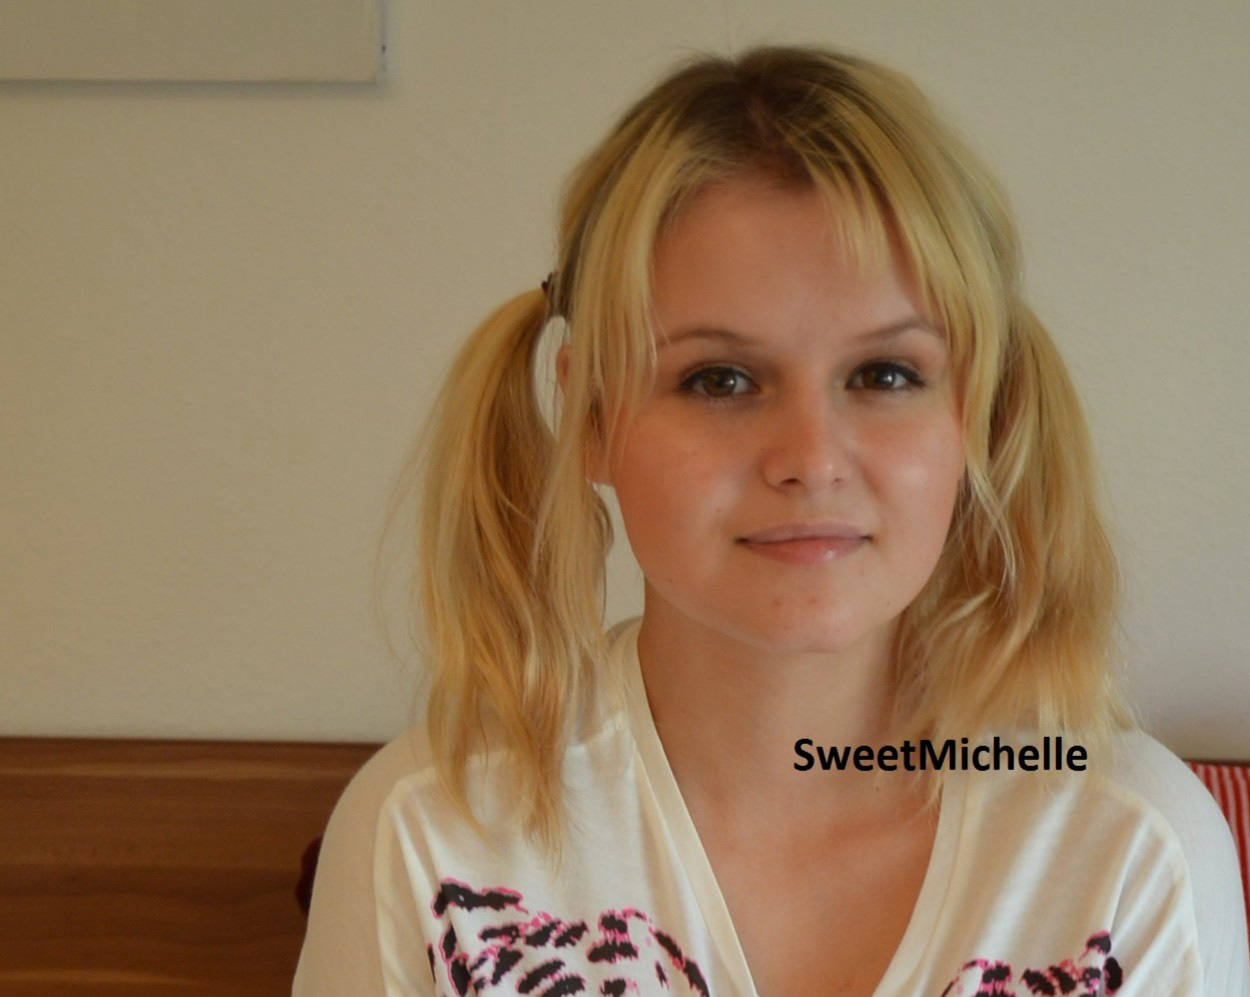 Sweetmichelle